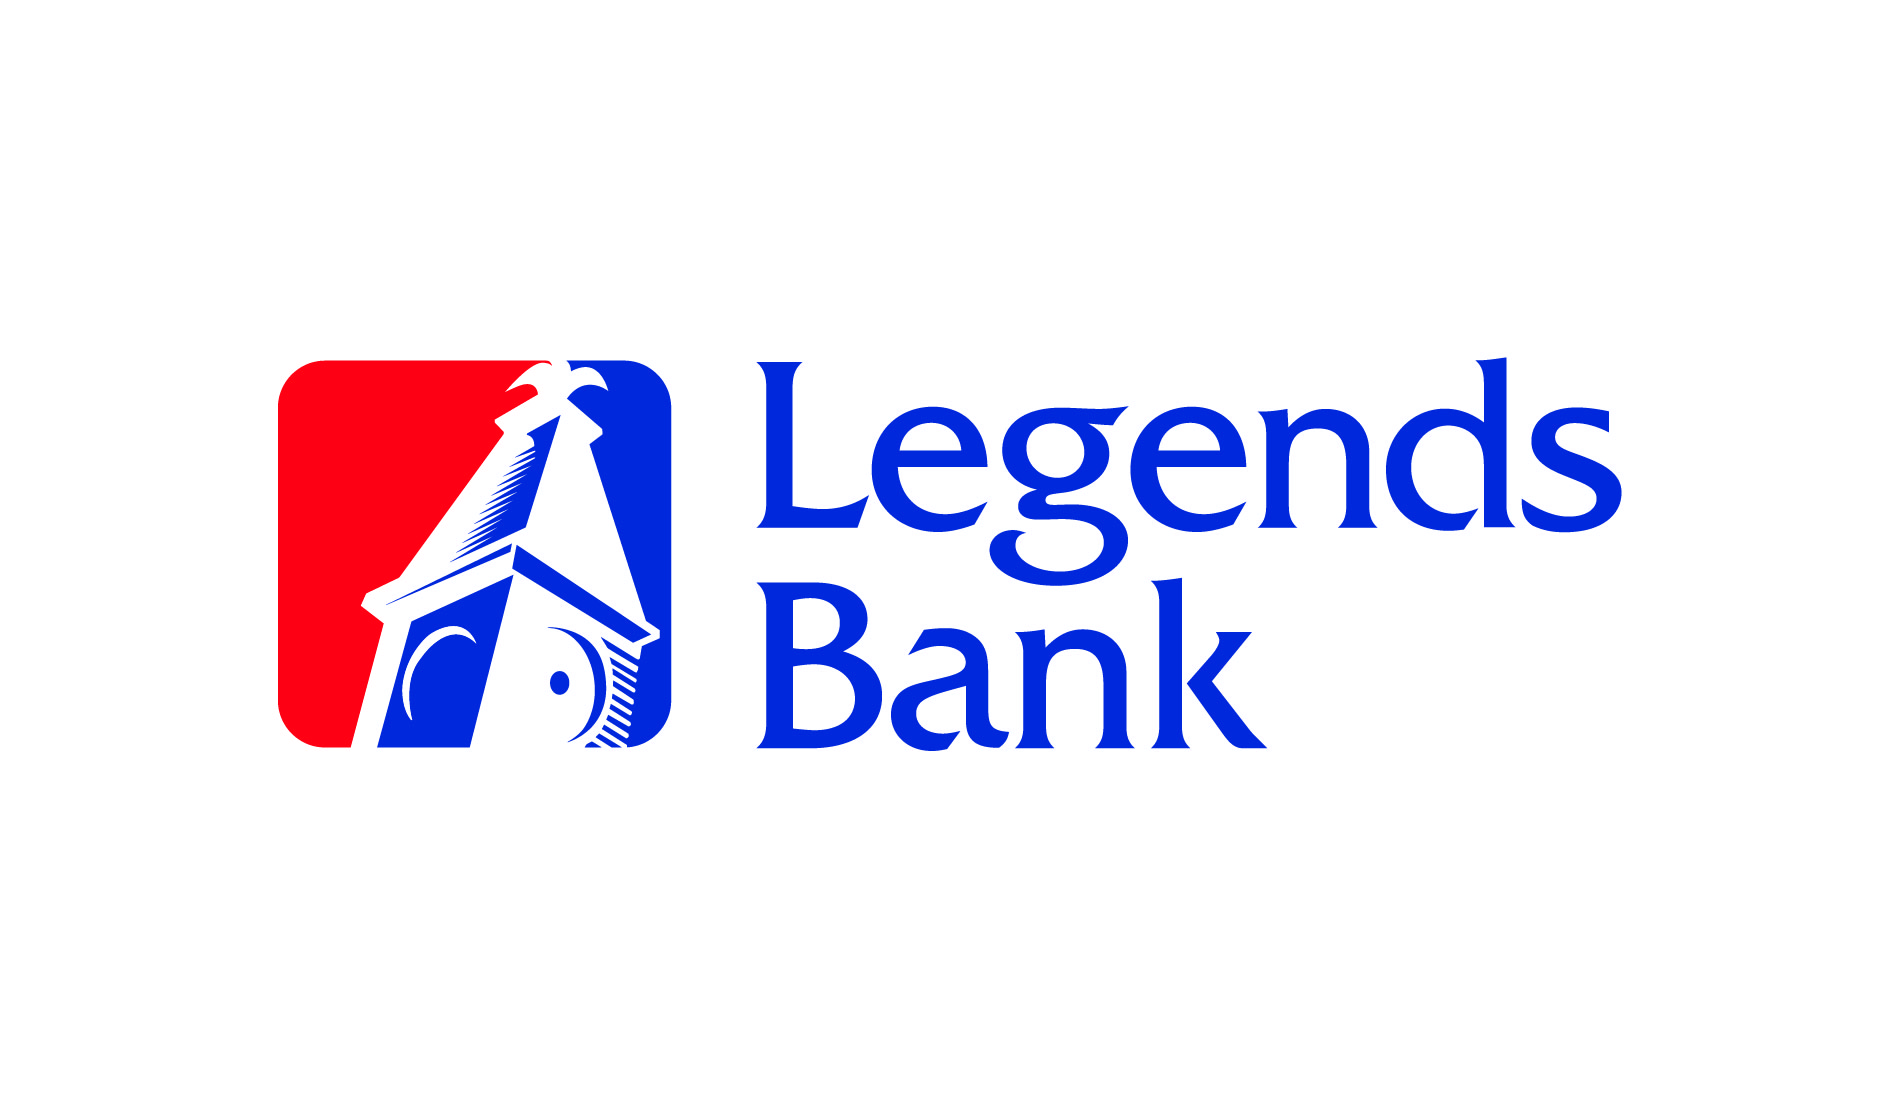 Legends Bank logo